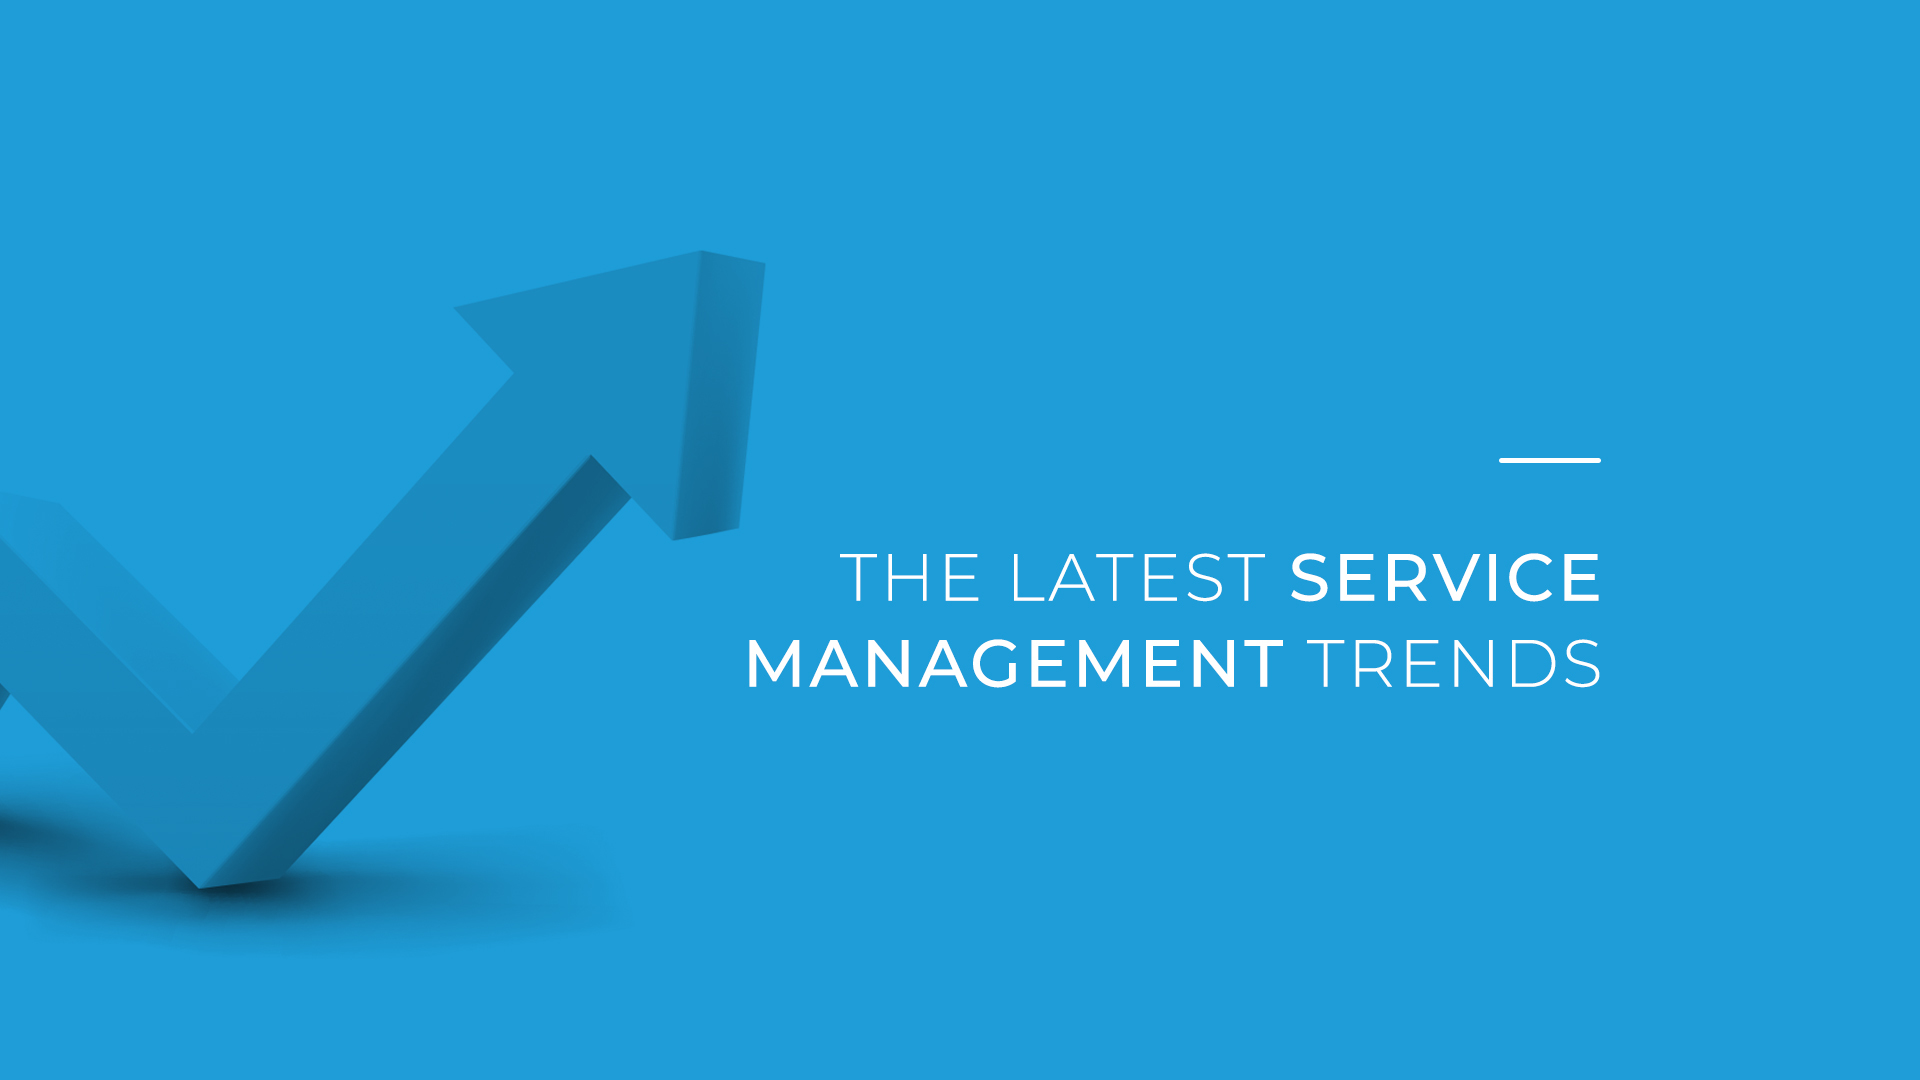 The Latest Service Management Trends